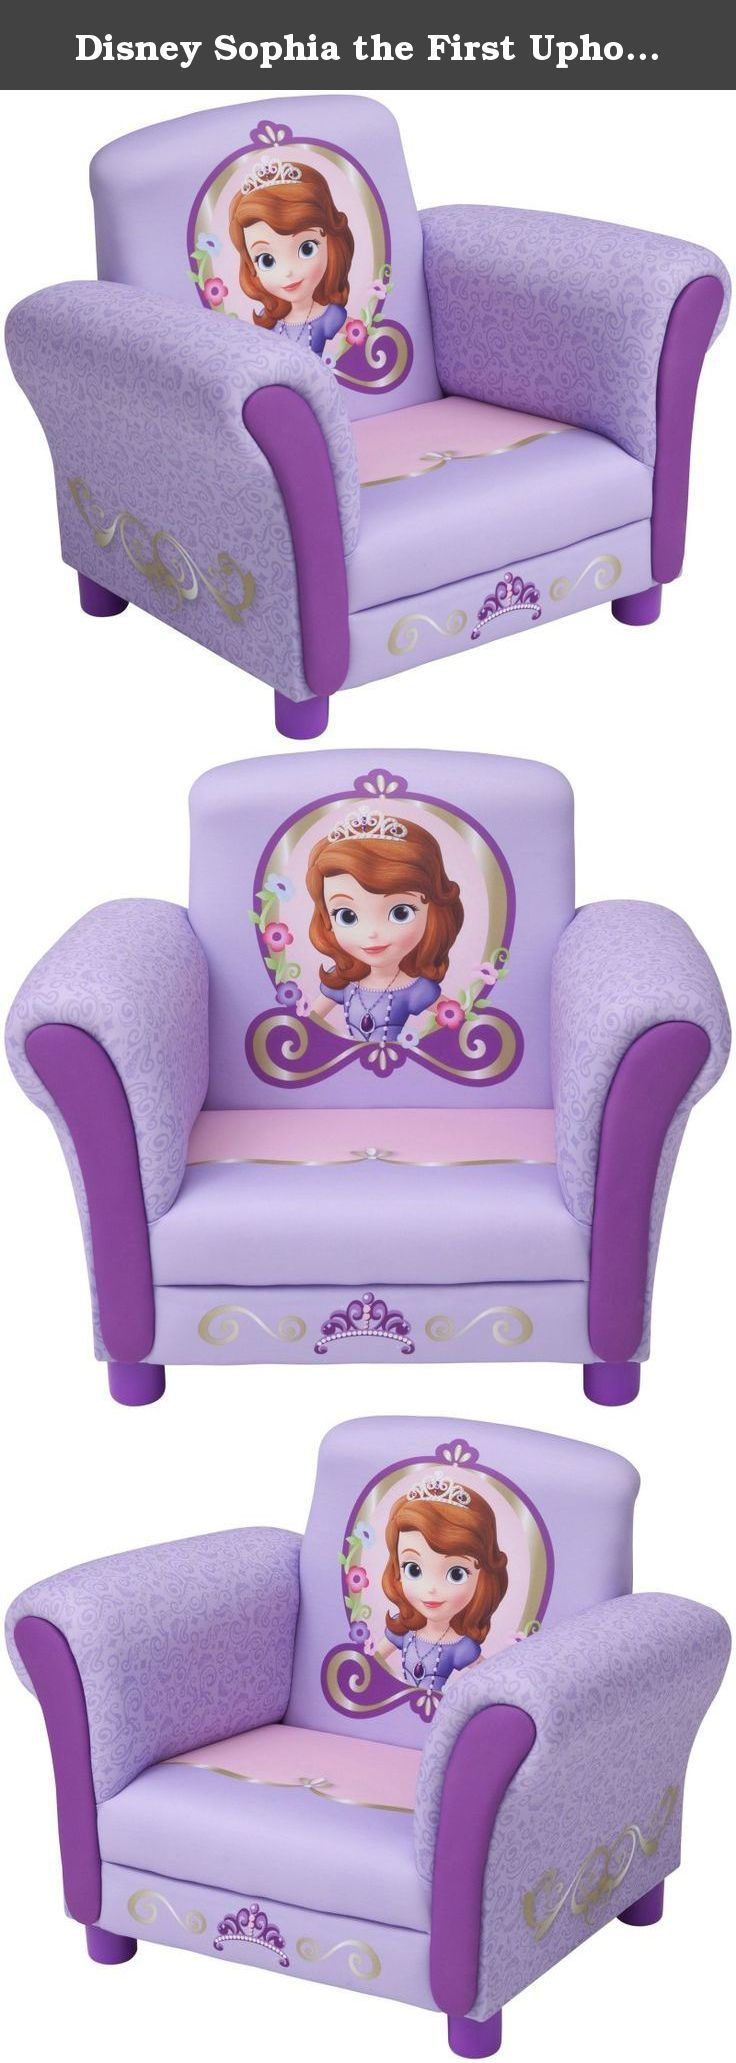 Disney Sophia the First Upholstered Toddler Chair. Disney Sophia the First Upholstered Toddler Chair This delightfully designed Disney Sofia the First Upholstered Chair is the ideal toddler chair for your little girl. Features your child's favorite characters, this upholstered chair provides the most comfortable spot for your little one to watch her movies and shows while relaxing after a long day of school. The upholstered chair is also built with a sturdy frame for durability making it…